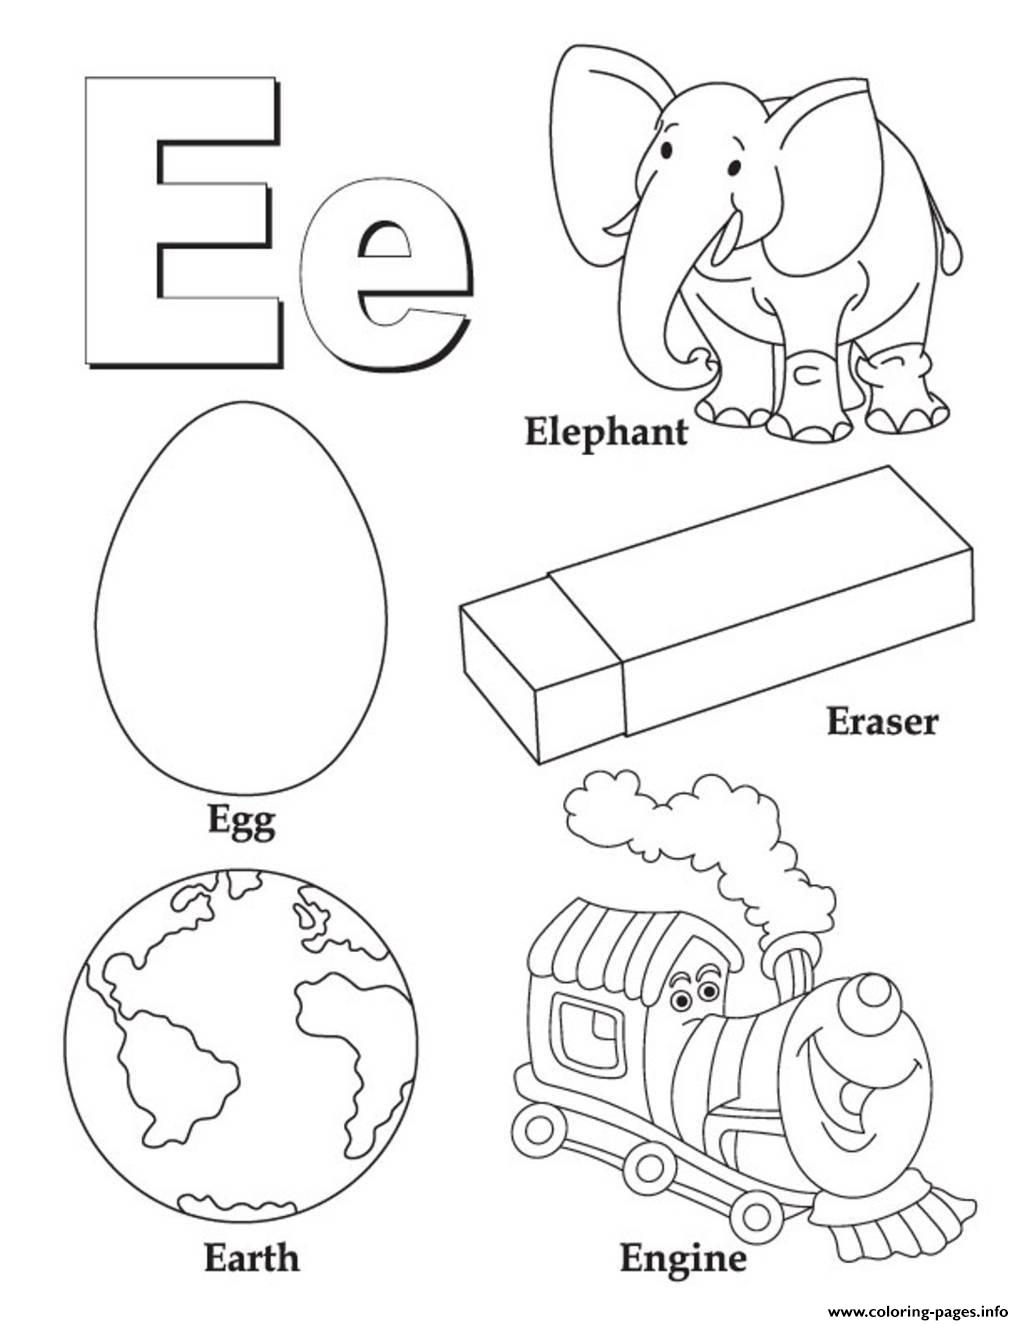 Alphabet S Free Words For Ea3a4 Coloring Pages Printable